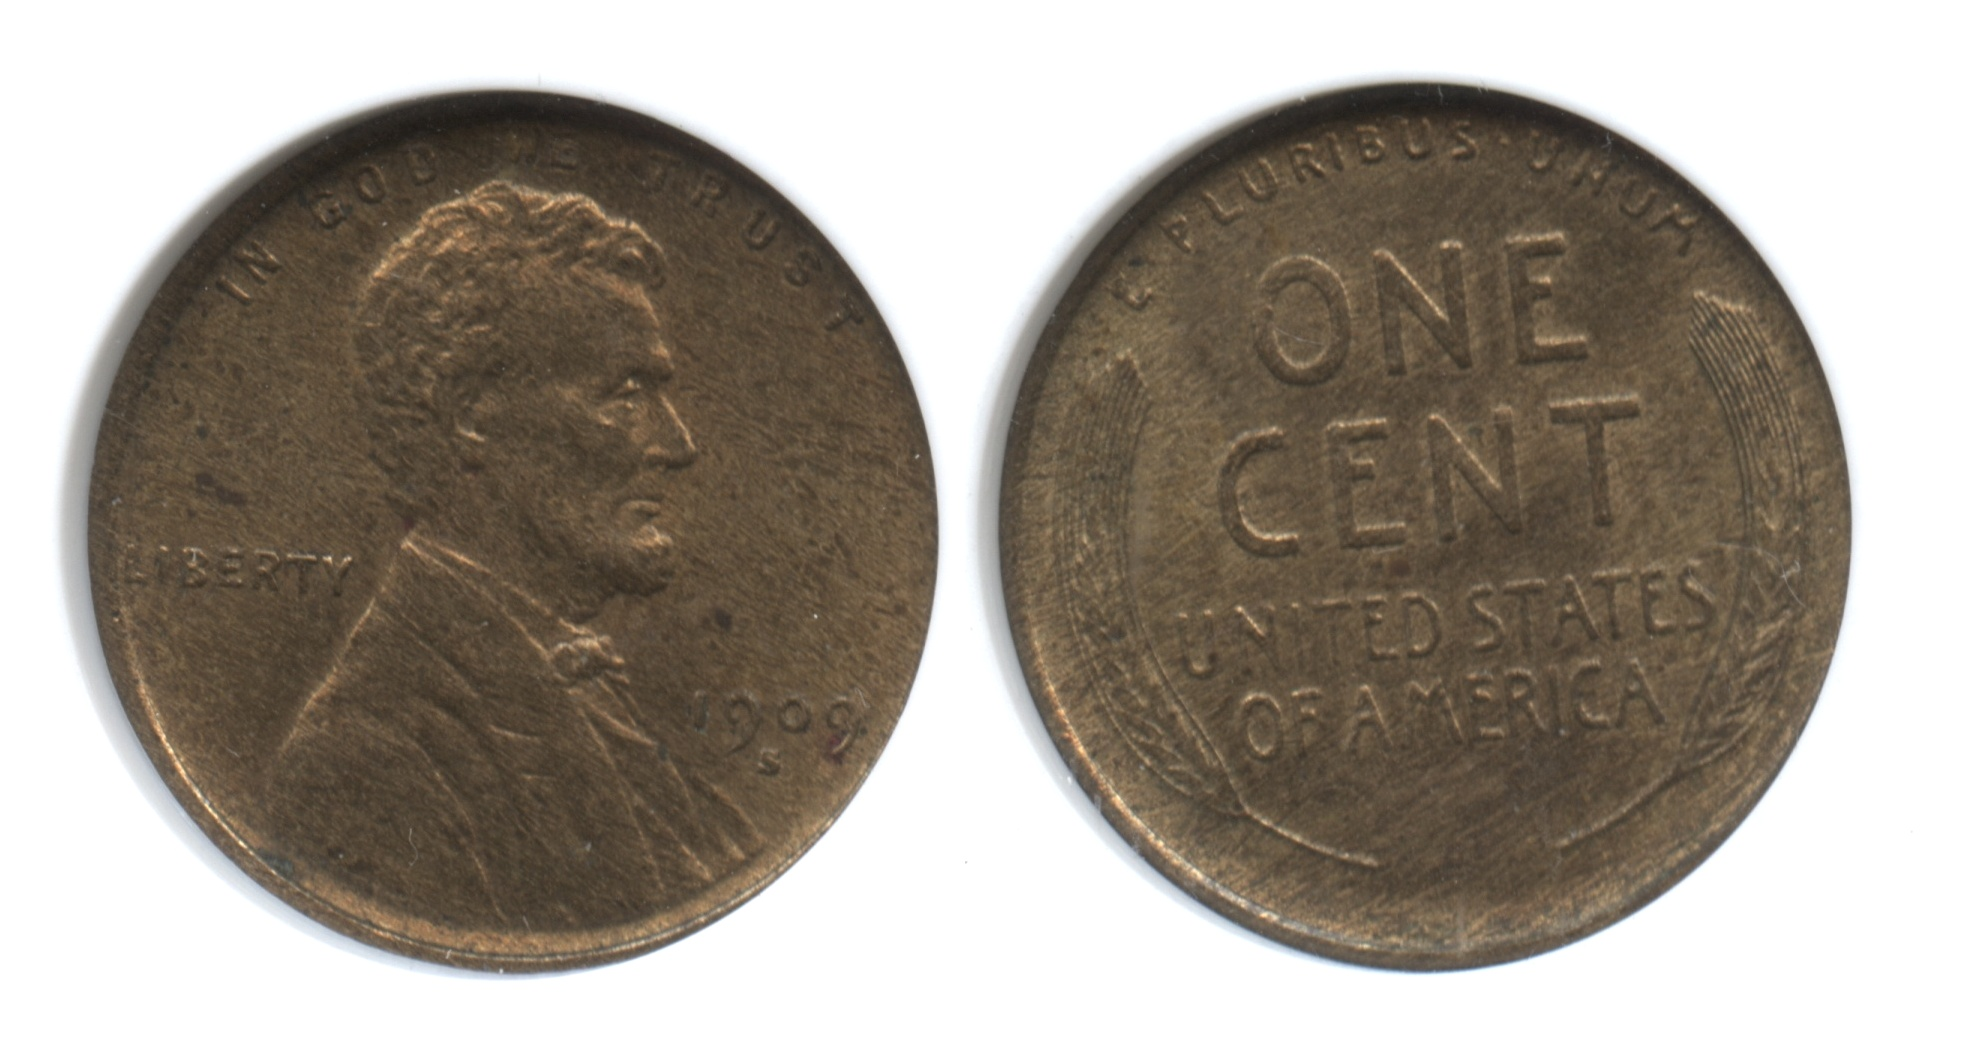 1909-S VDB Lincoln Cent ANACS MS-62 Weak VDB